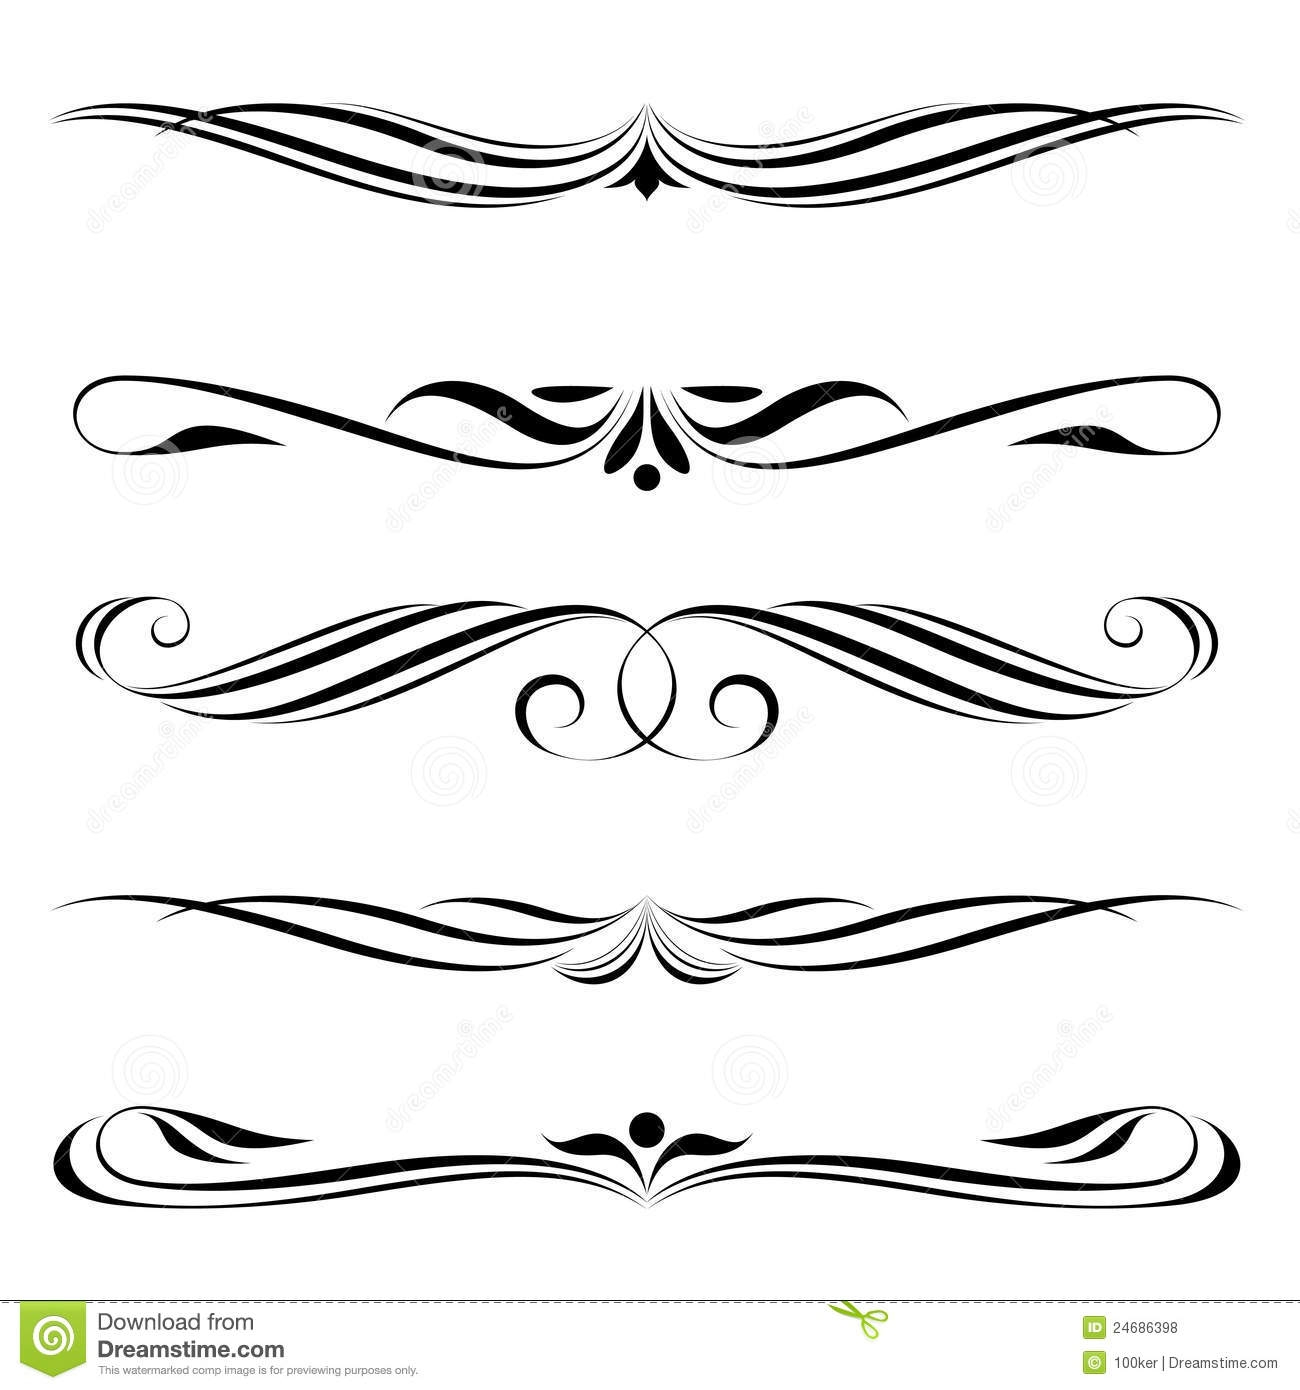 Lines clipart #2, Download drawings